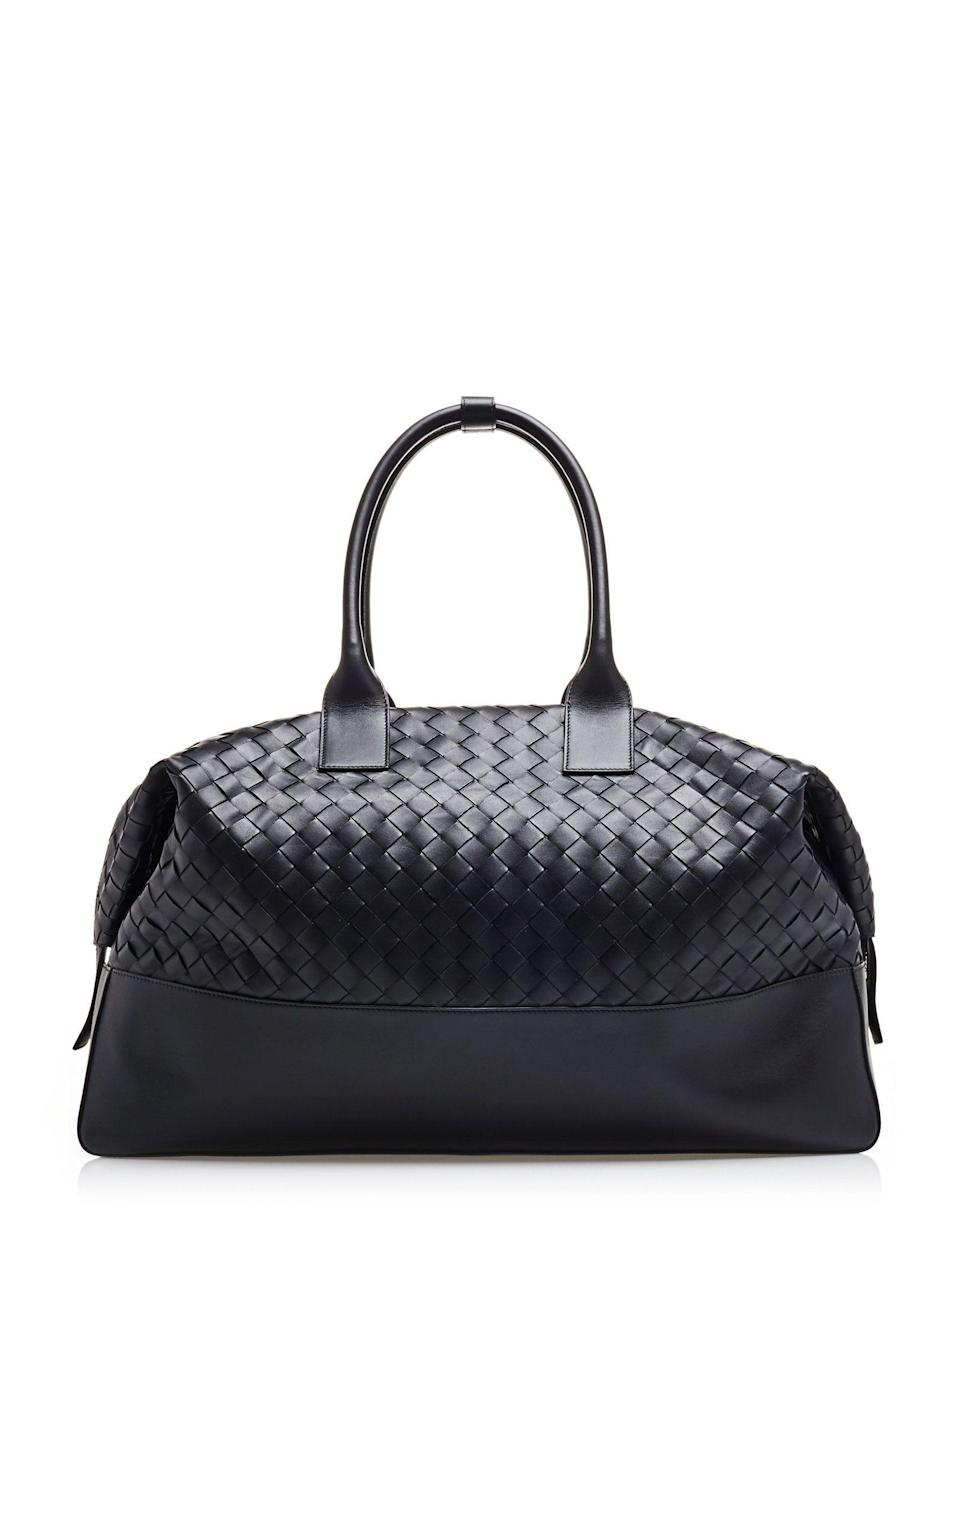 "<p><strong>Bottega Veneta </strong></p><p>modaoperandi.com</p><p><strong>$4390.00</strong></p><p><a href=""https://go.redirectingat.com?id=74968X1596630&url=https%3A%2F%2Fwww.modaoperandi.com%2Fbottega-veneta-r20%2Flarge-intrecciato-leather-travel-tote&sref=https%3A%2F%2Fwww.harpersbazaar.com%2Ffashion%2Ftrends%2Fg4473%2Fmens-holiday-gift-guide%2F"" rel=""nofollow noopener"" target=""_blank"" data-ylk=""slk:Shop Now"" class=""link rapid-noclick-resp"">Shop Now</a></p><p>If he is a fashion devotee, get him a bag from the brand that is all the rage with the street style stars. </p>"